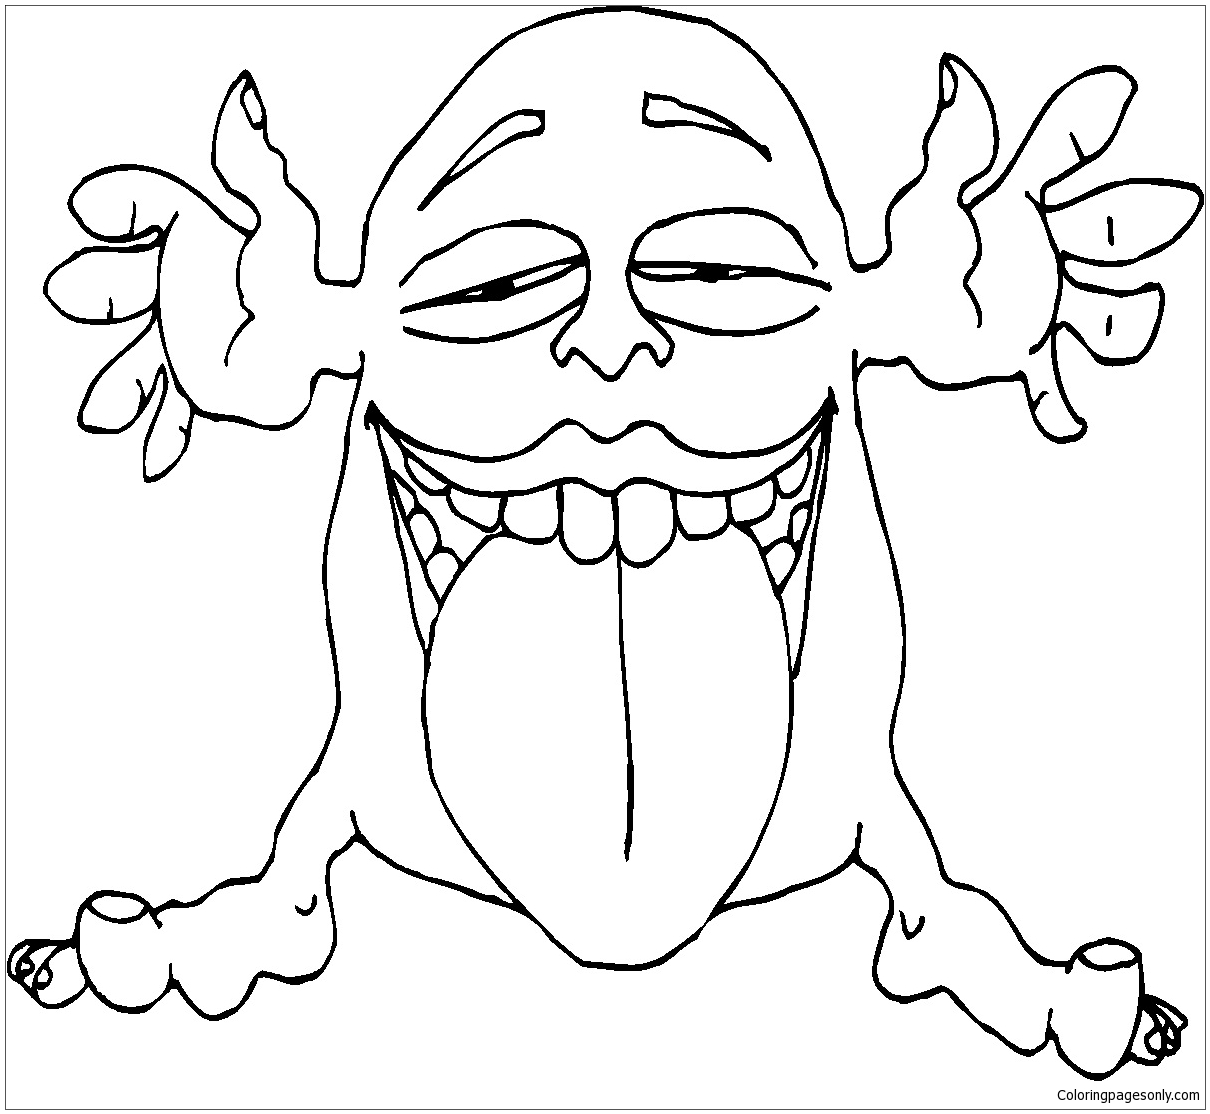 Monsters with Big Tongue Coloring Page - Free Coloring Pages Online